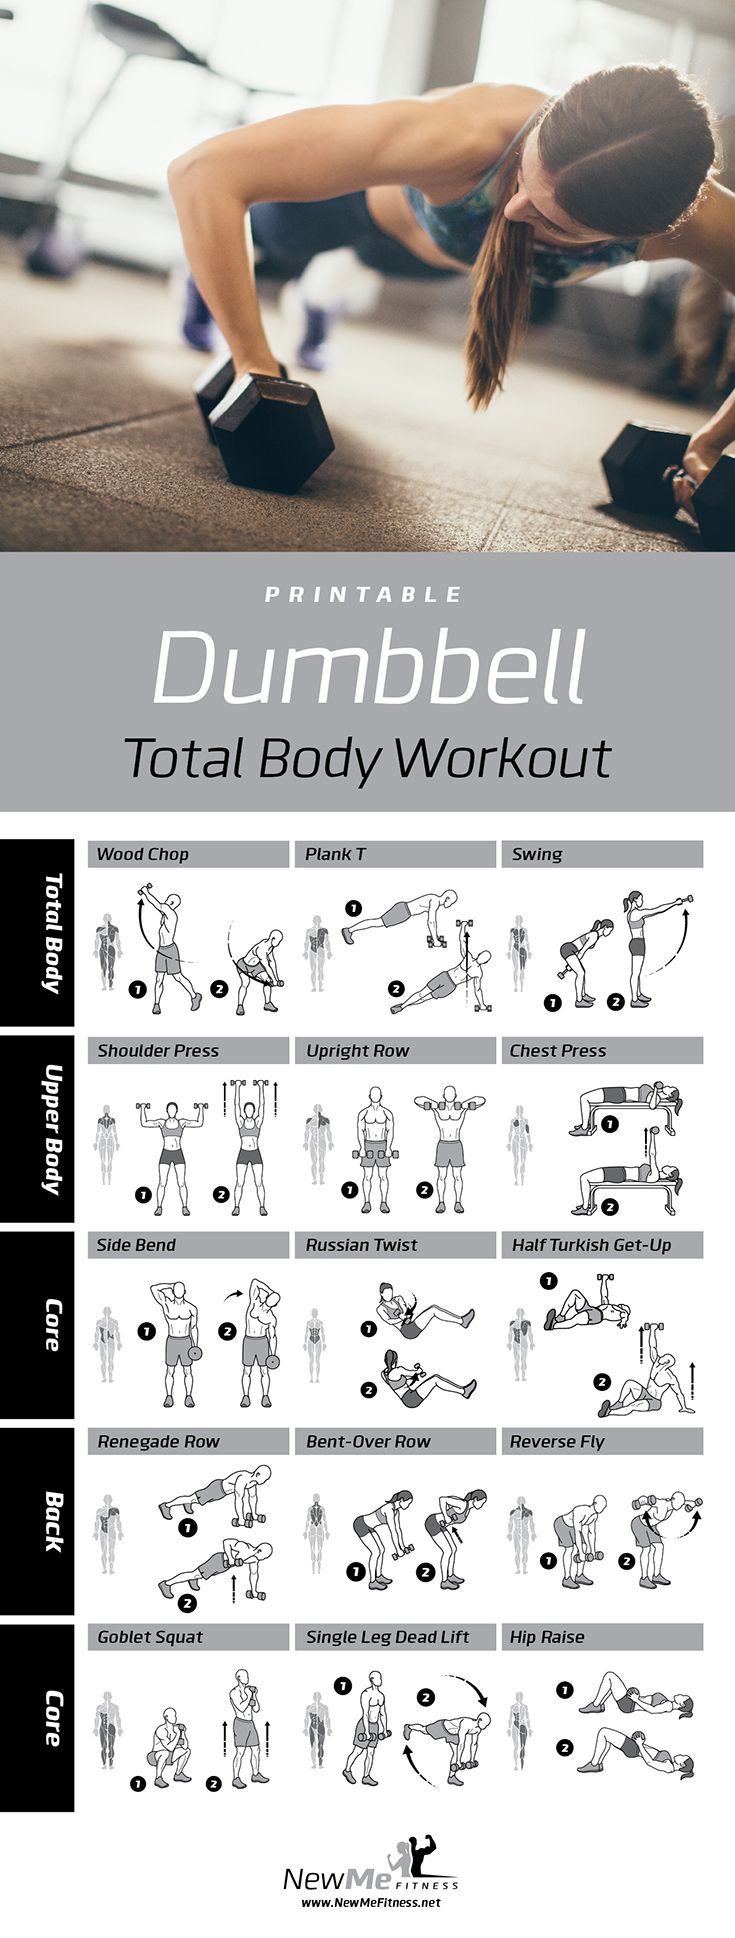 Get Tone and look great naked! Be stronger and feel better with this all-around dumbbell workout! #dumbbellworkout